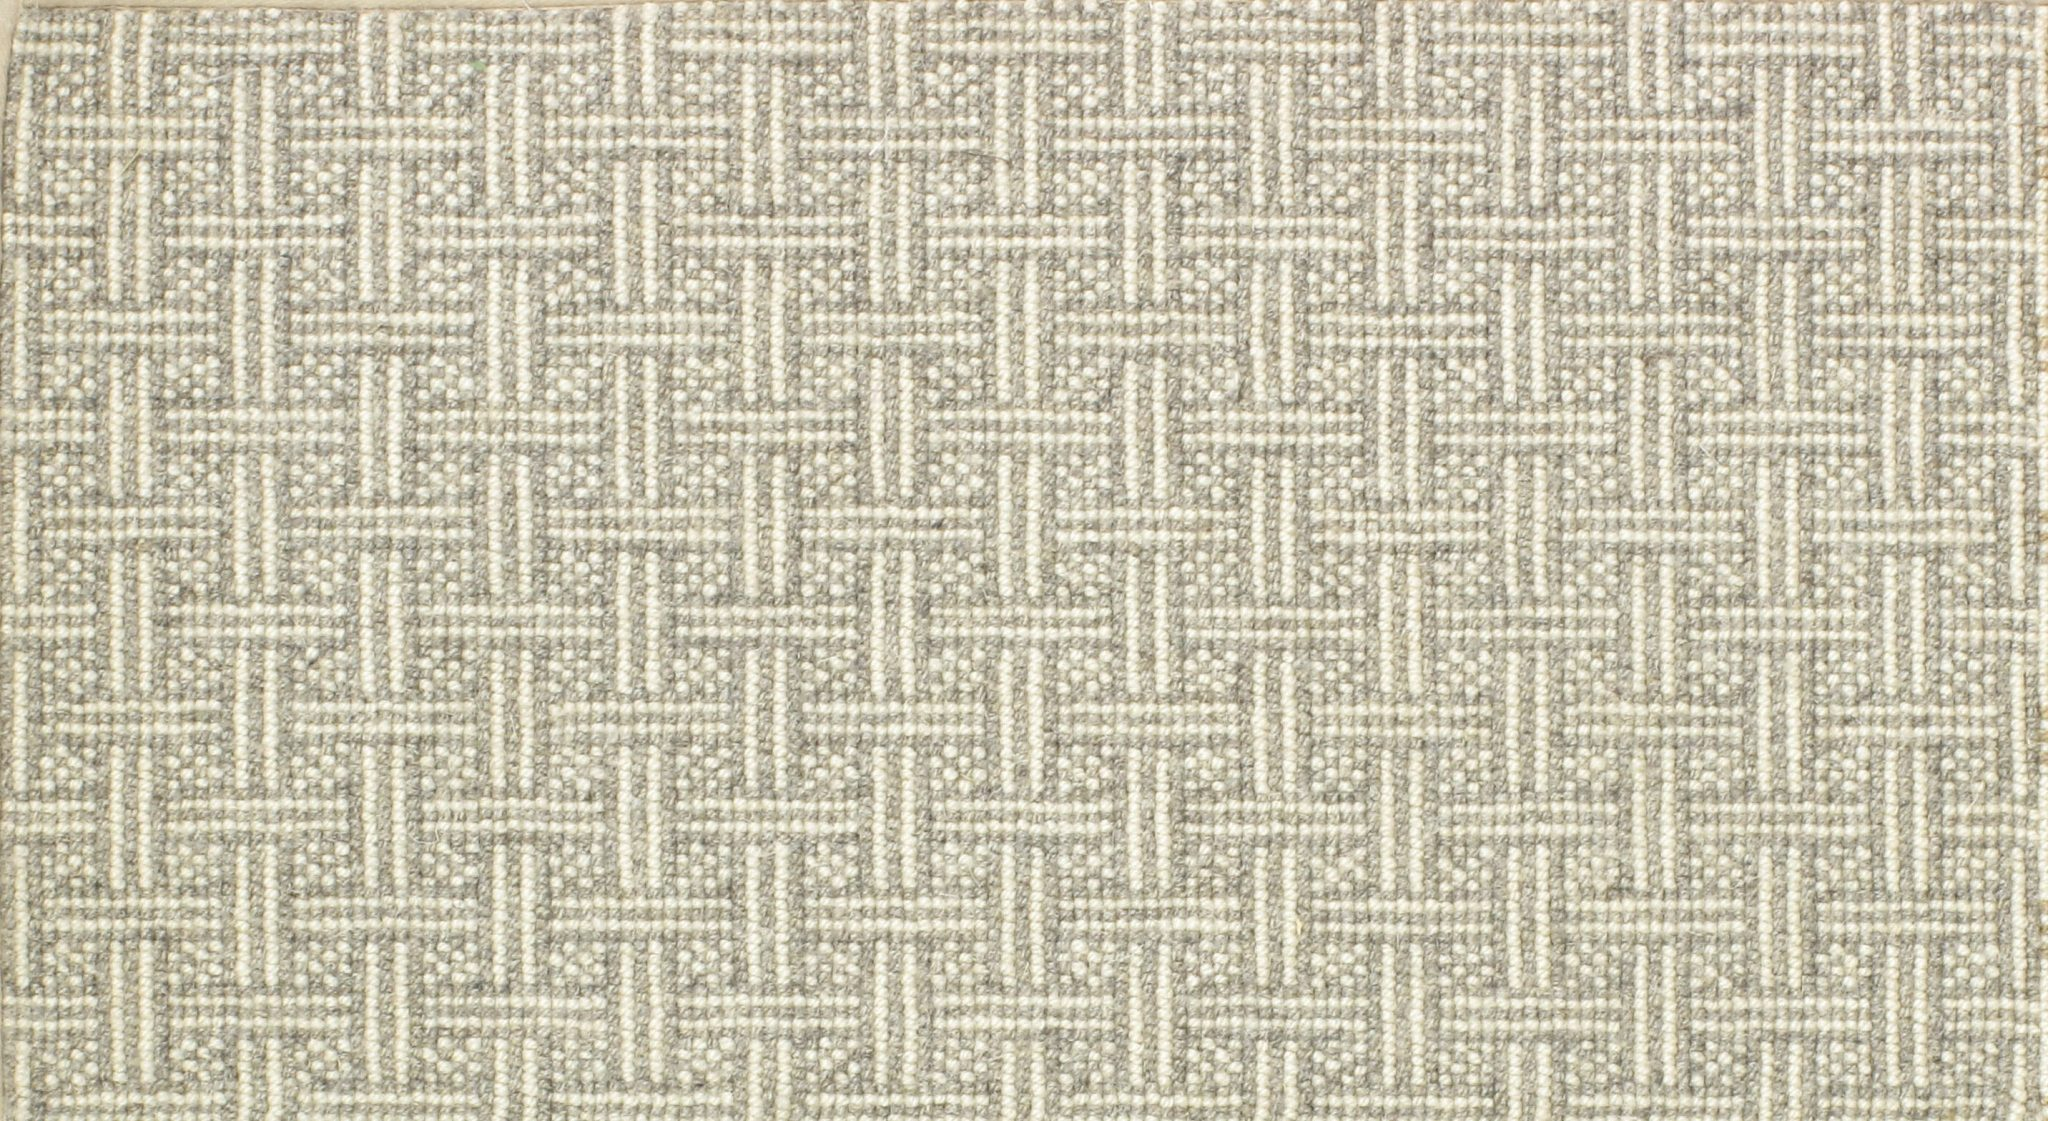 Buy Templeton By Prestige Wool Pattern Carpets In Dalton